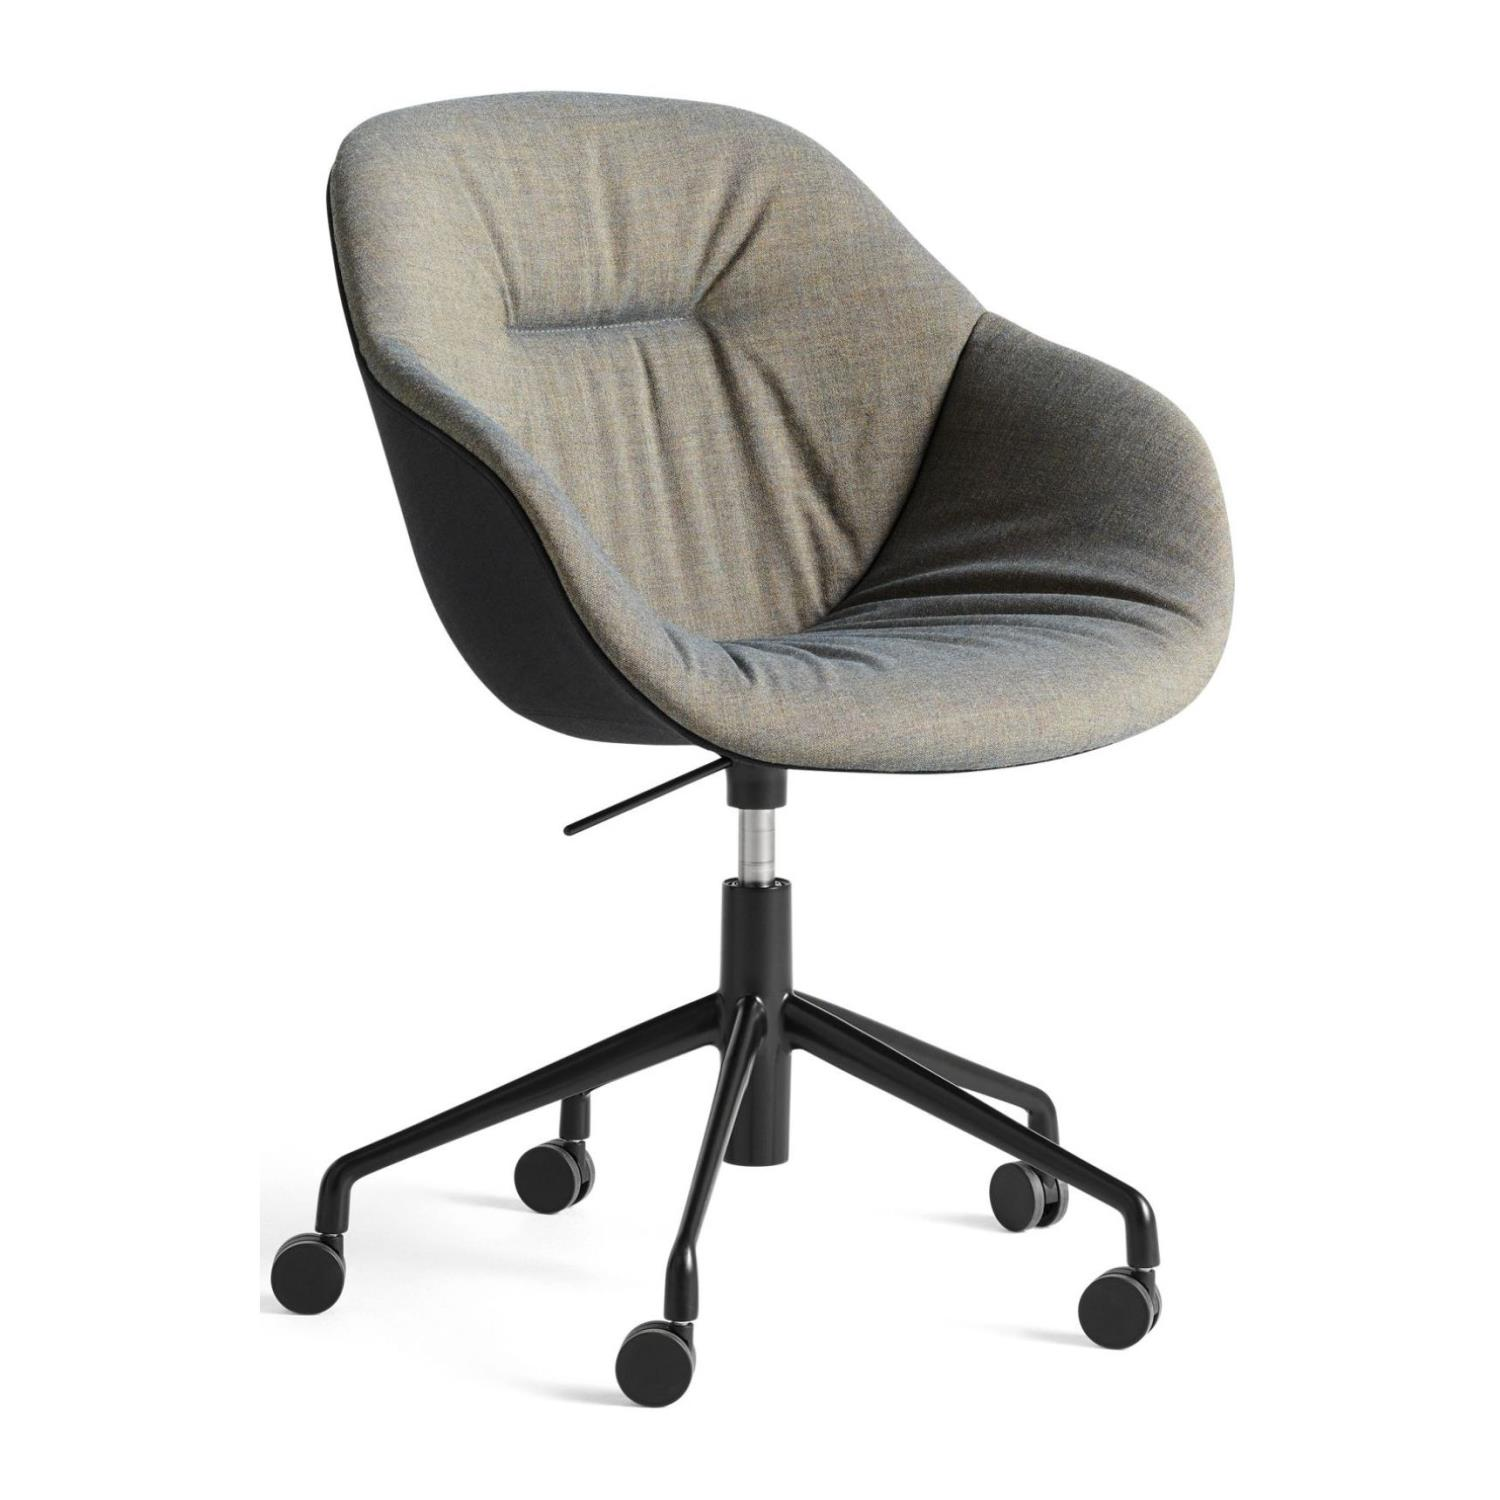 AAC 153 Soft Duo | About A Chair | Swivel Base